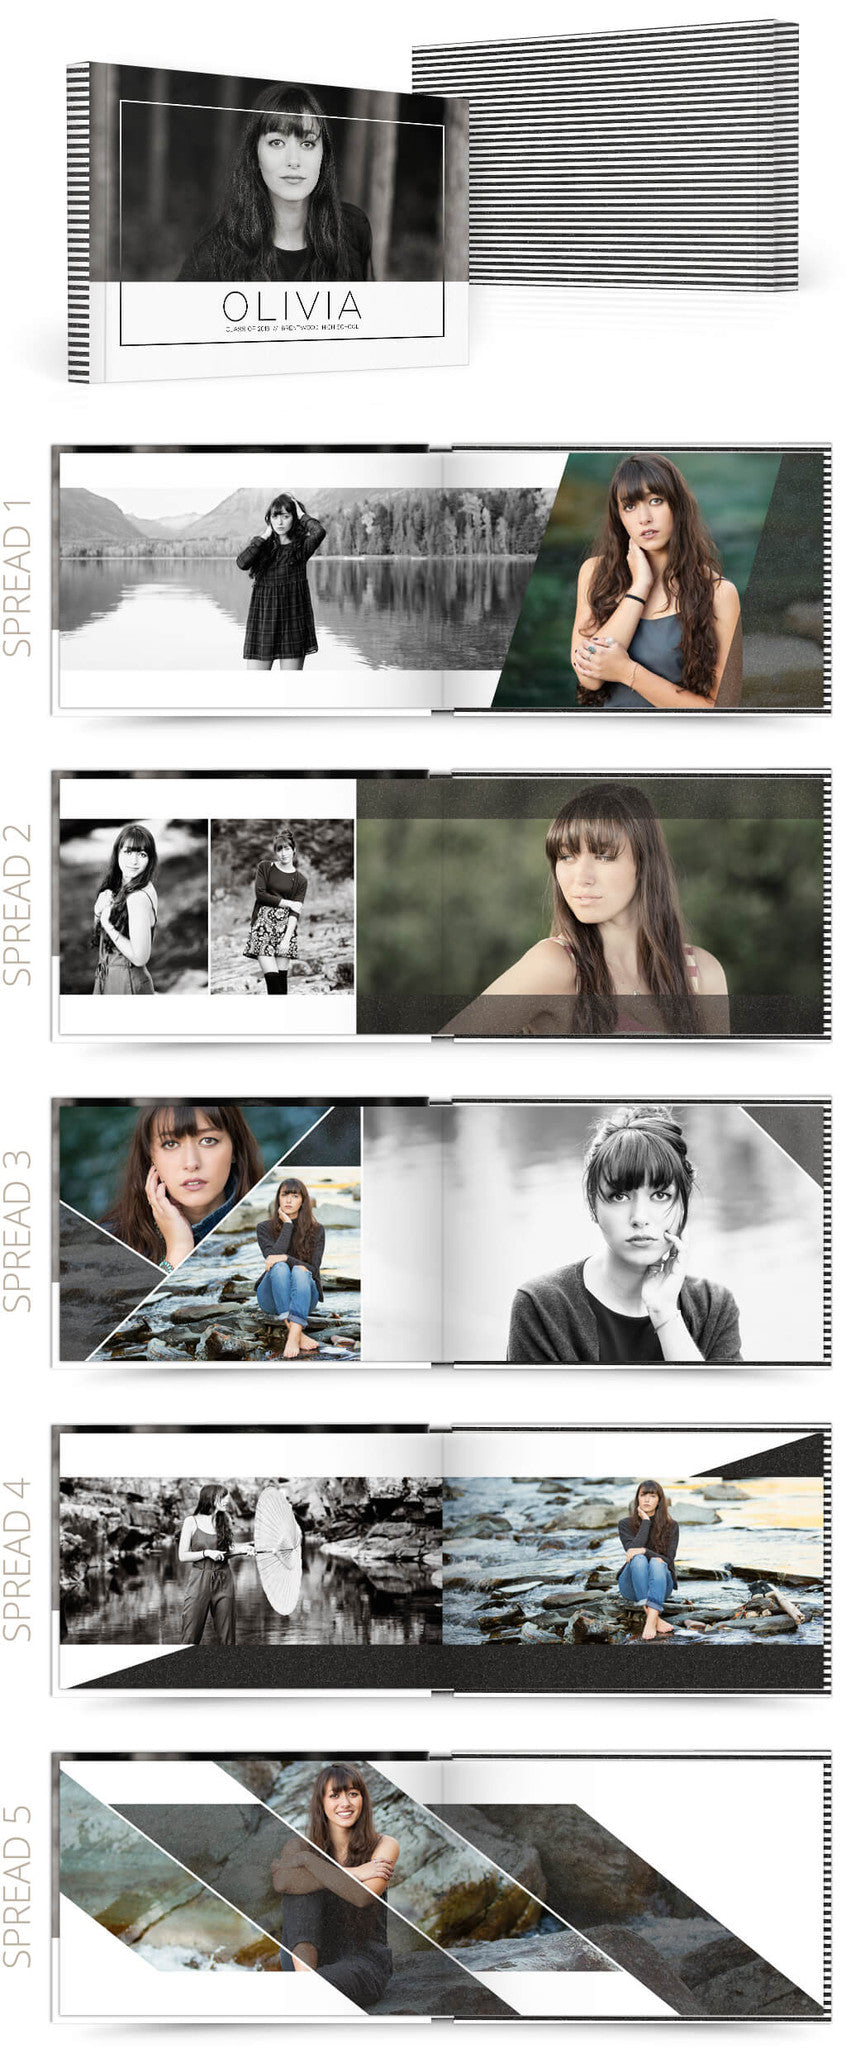 Olivia 12x8 Album Photoshop Templates